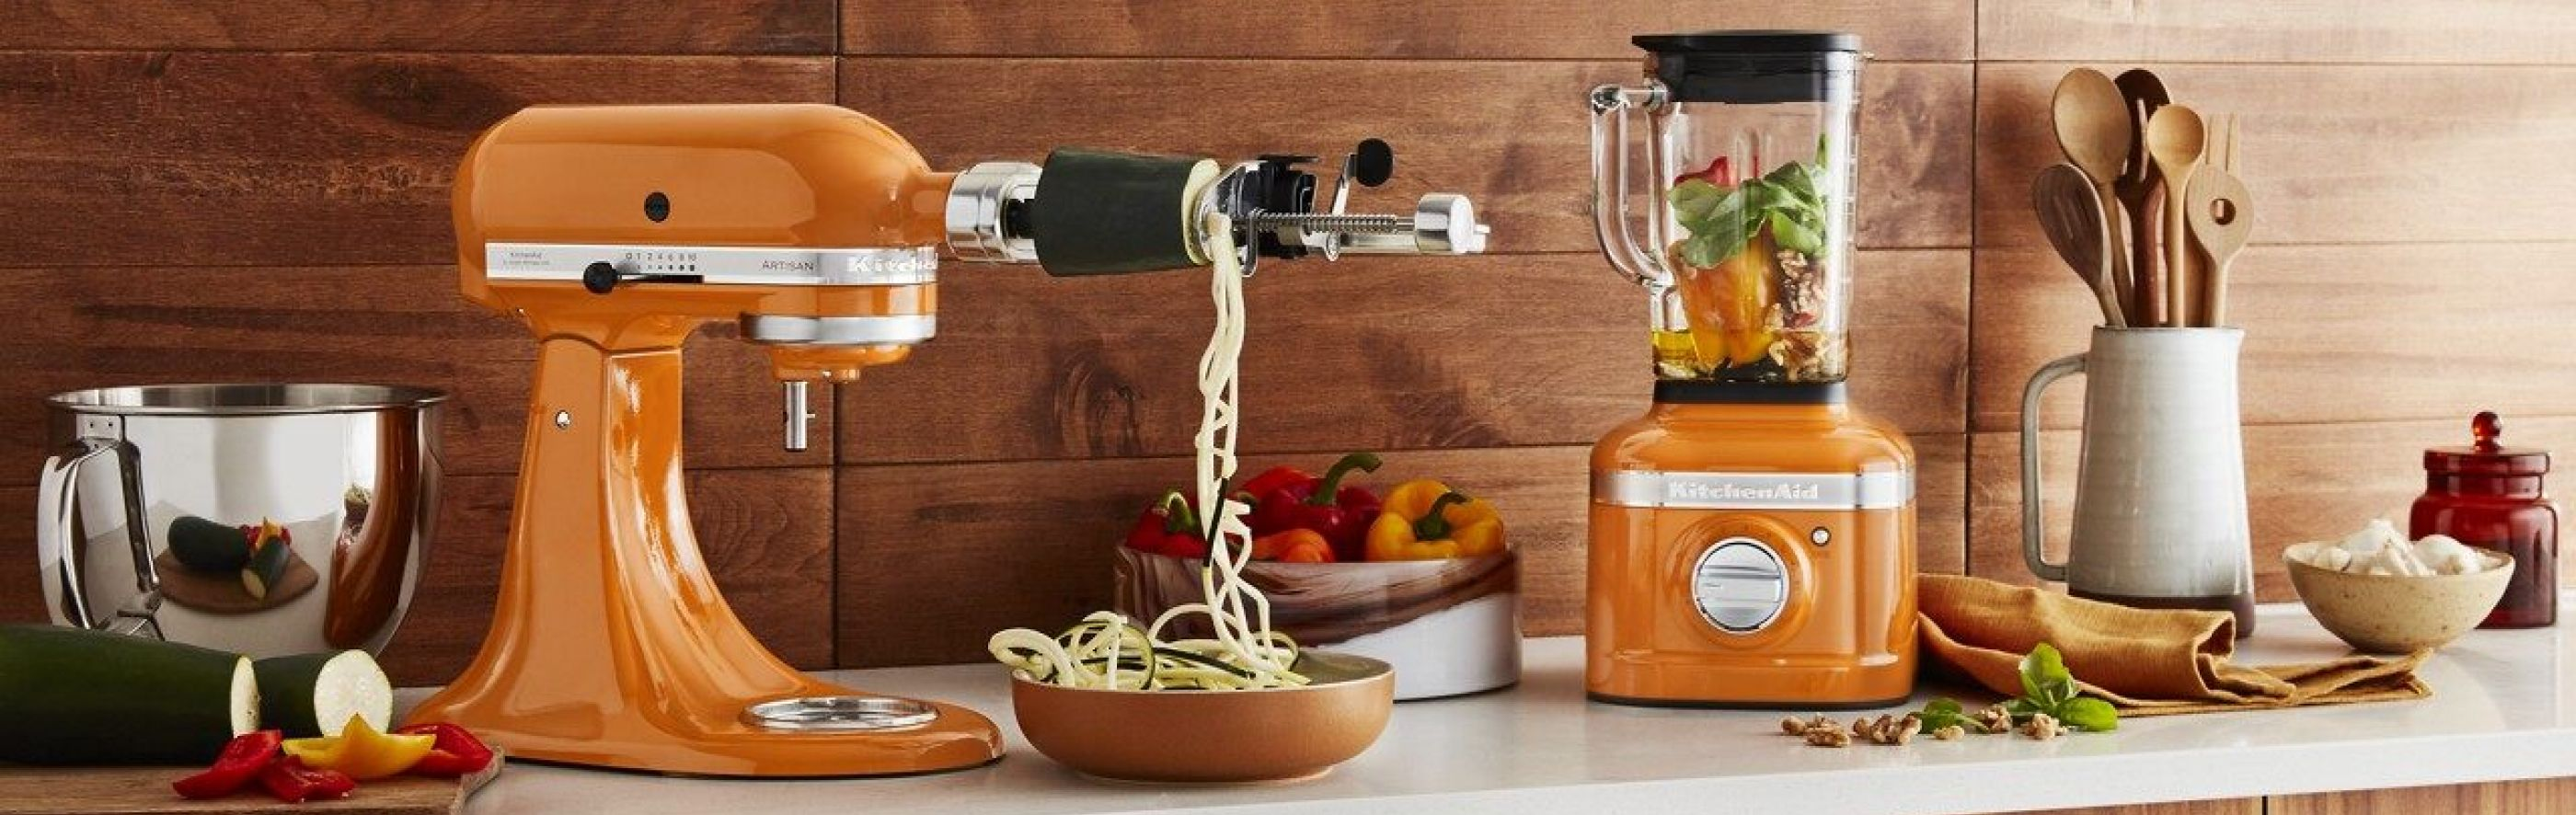 Honey colored KitchenAid® stand mixer and blender on countertop